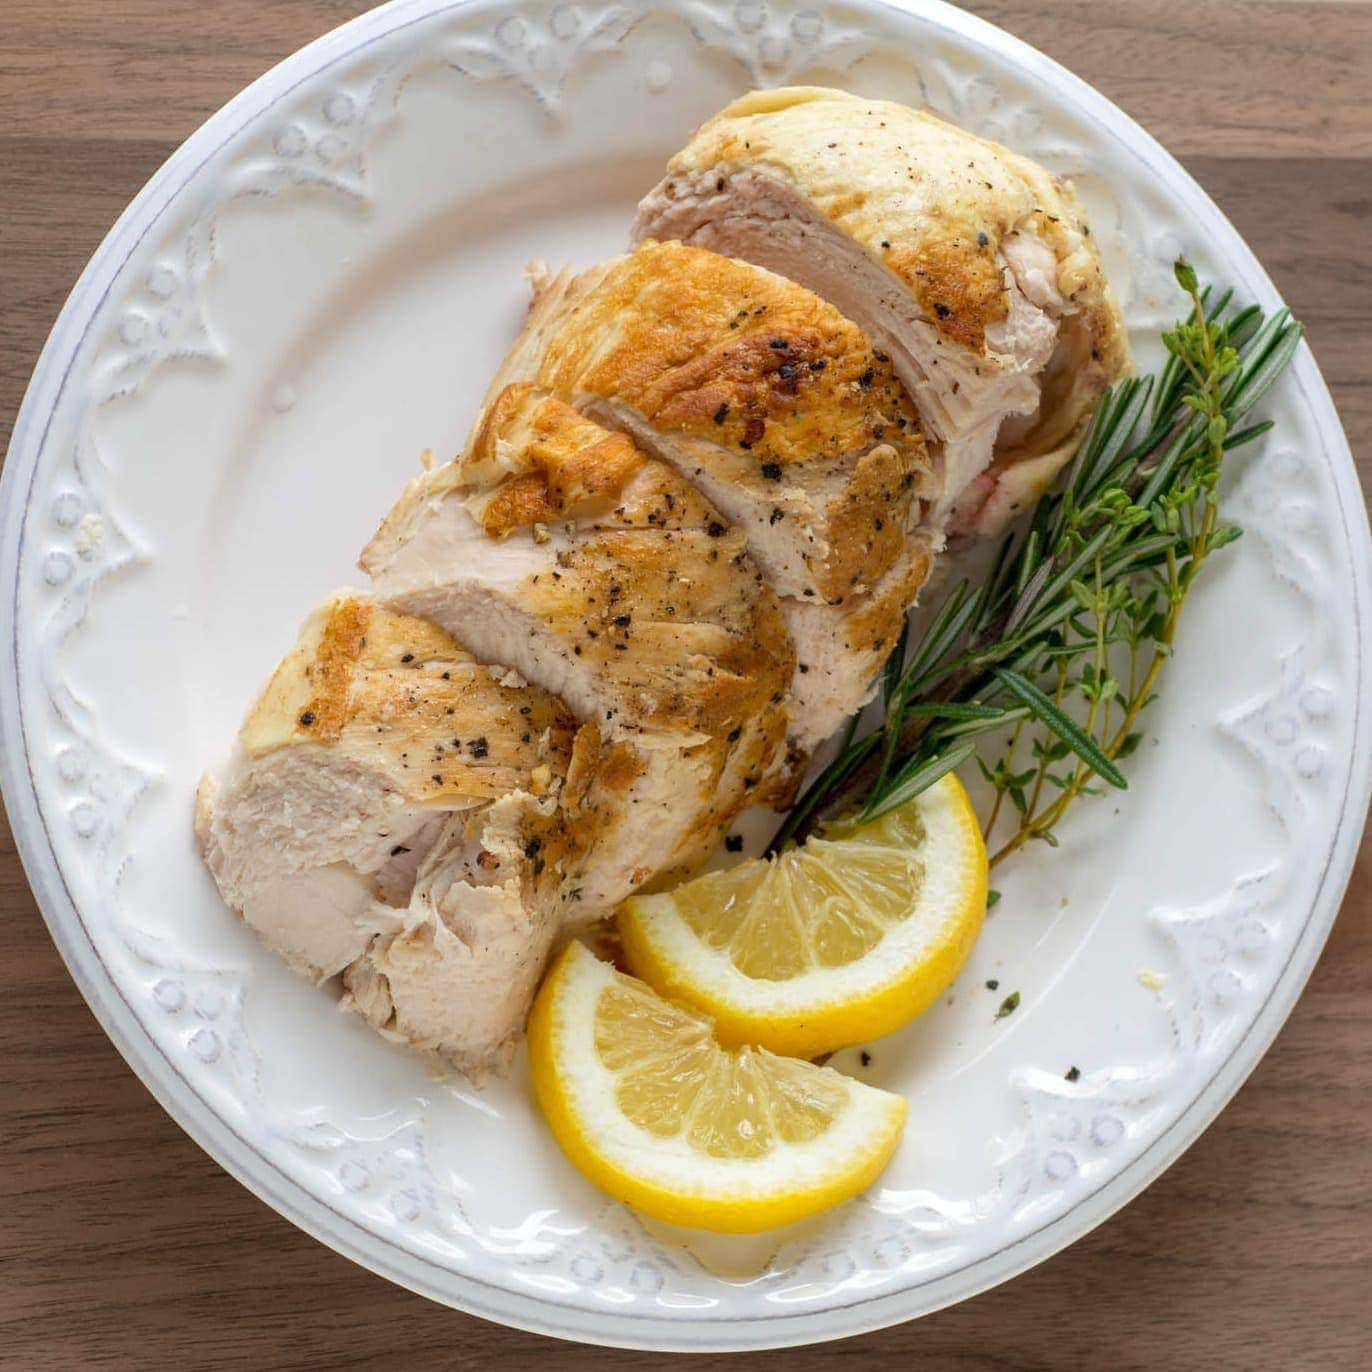 Sous-Vide Chicken Breast with Lemon, Thyme and Rosemary